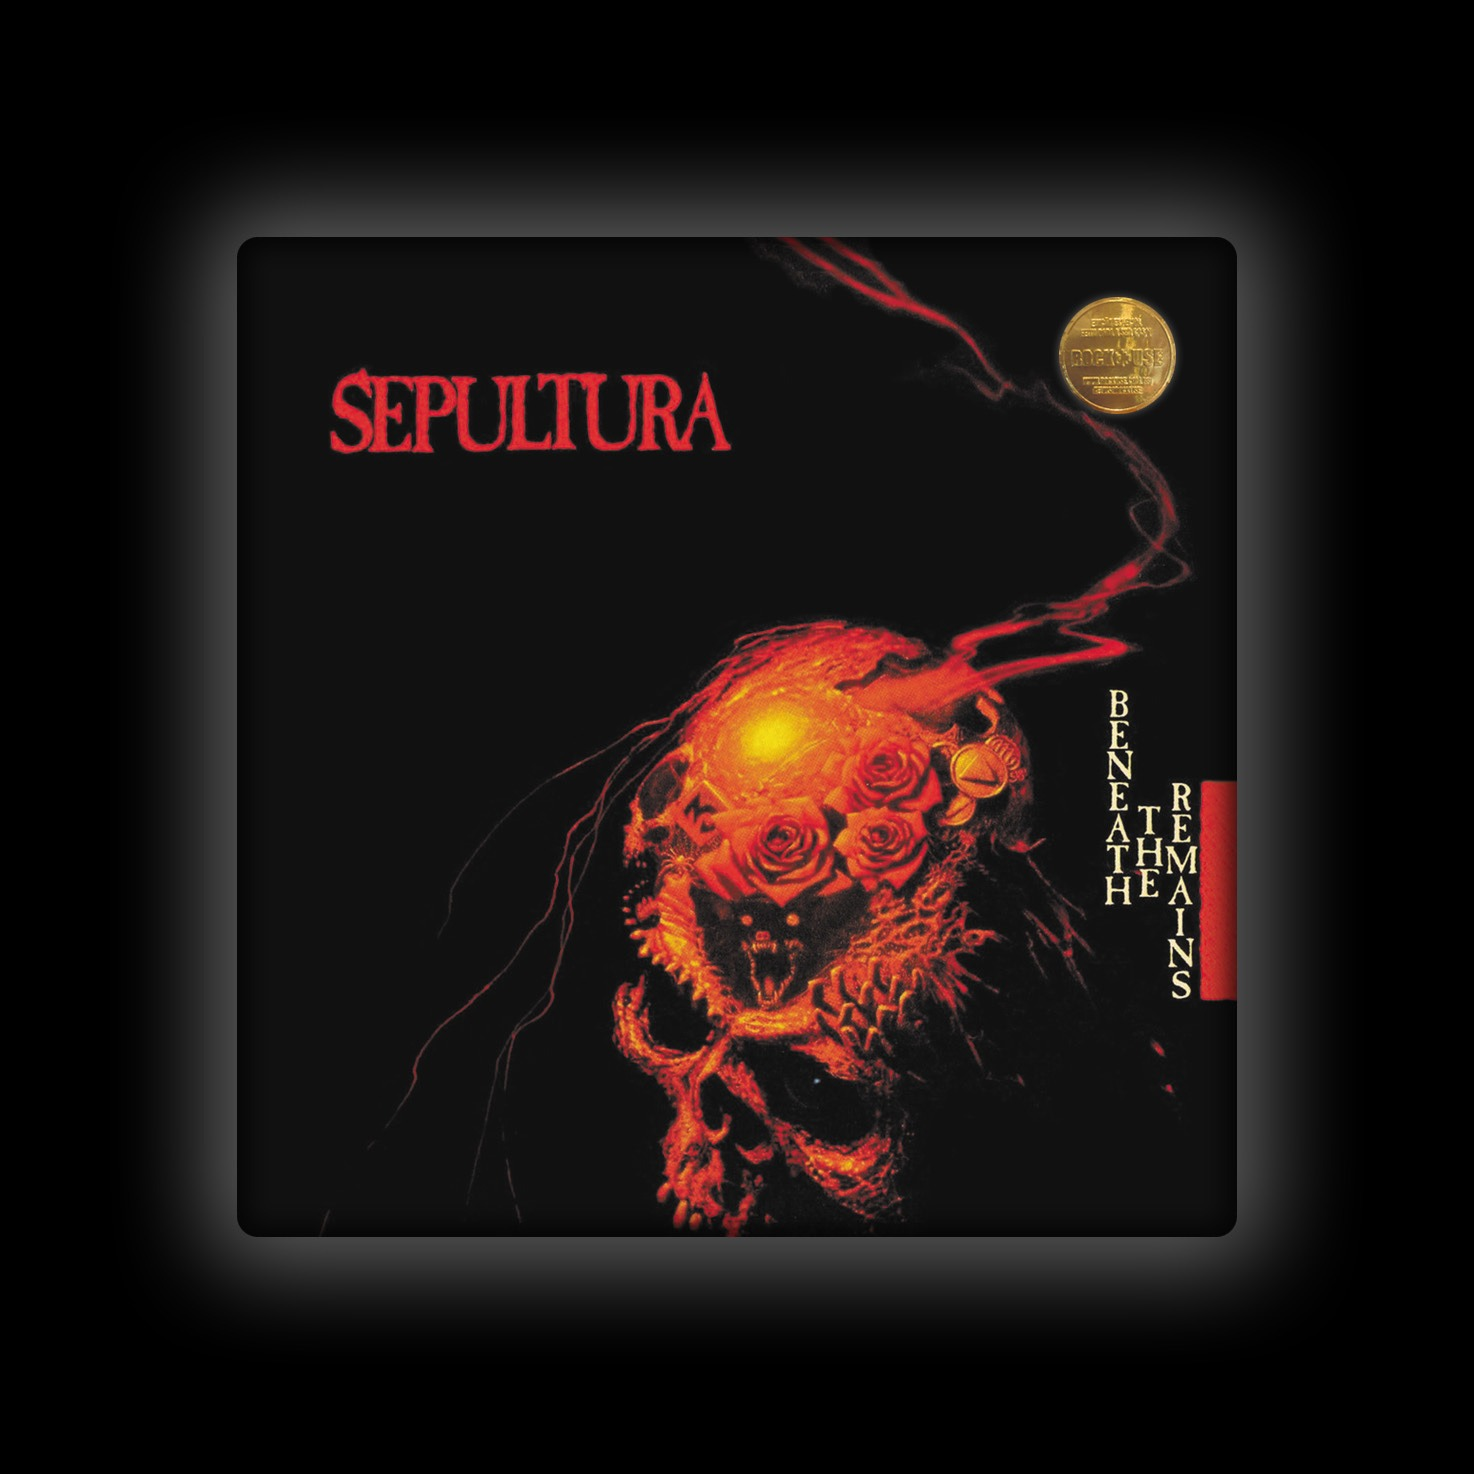 Capa de Almofada Sepultura - Beneath the Remains